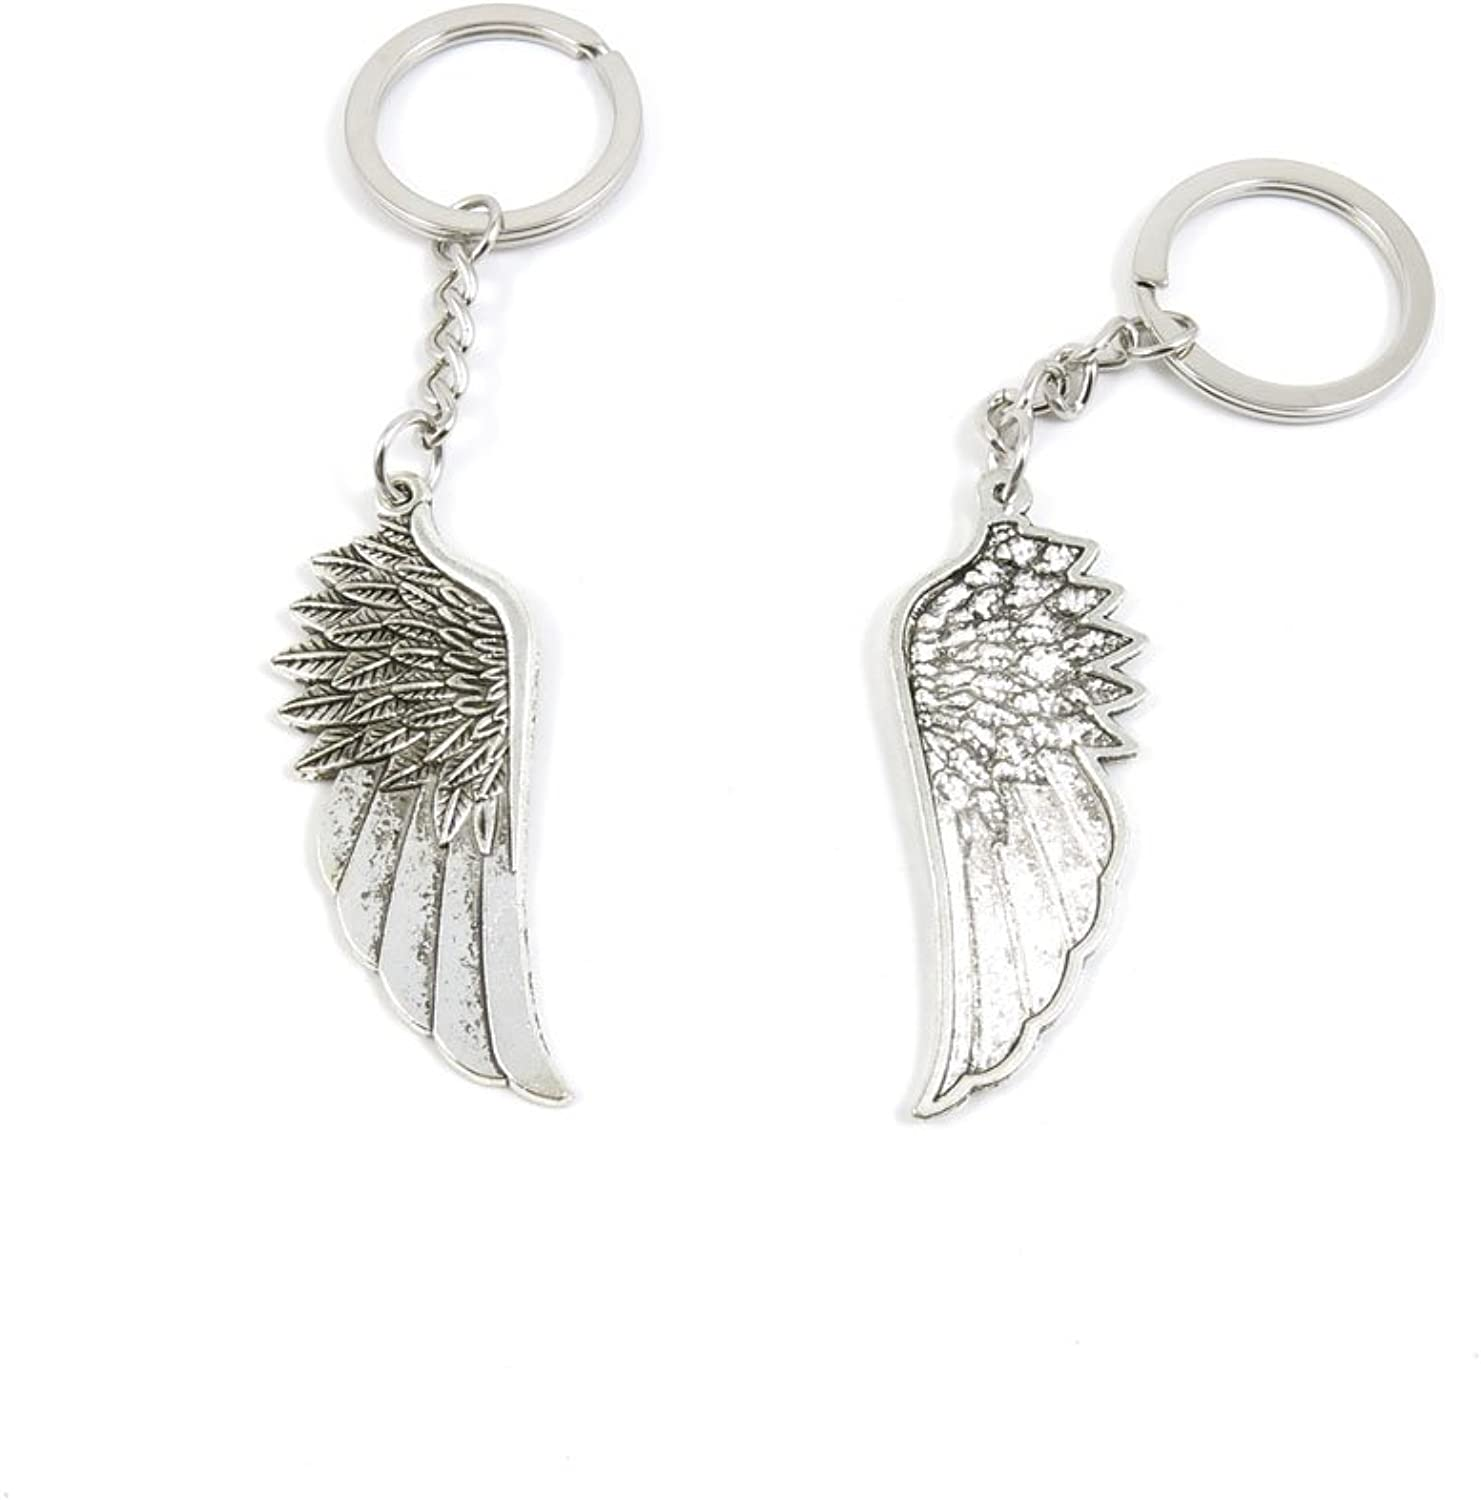 100 Pieces Keychain Keyring Door Car Key Chain Ring Tag Charms Bulk Supply Jewelry Making Clasp Findings I9VA1H Angel Wings